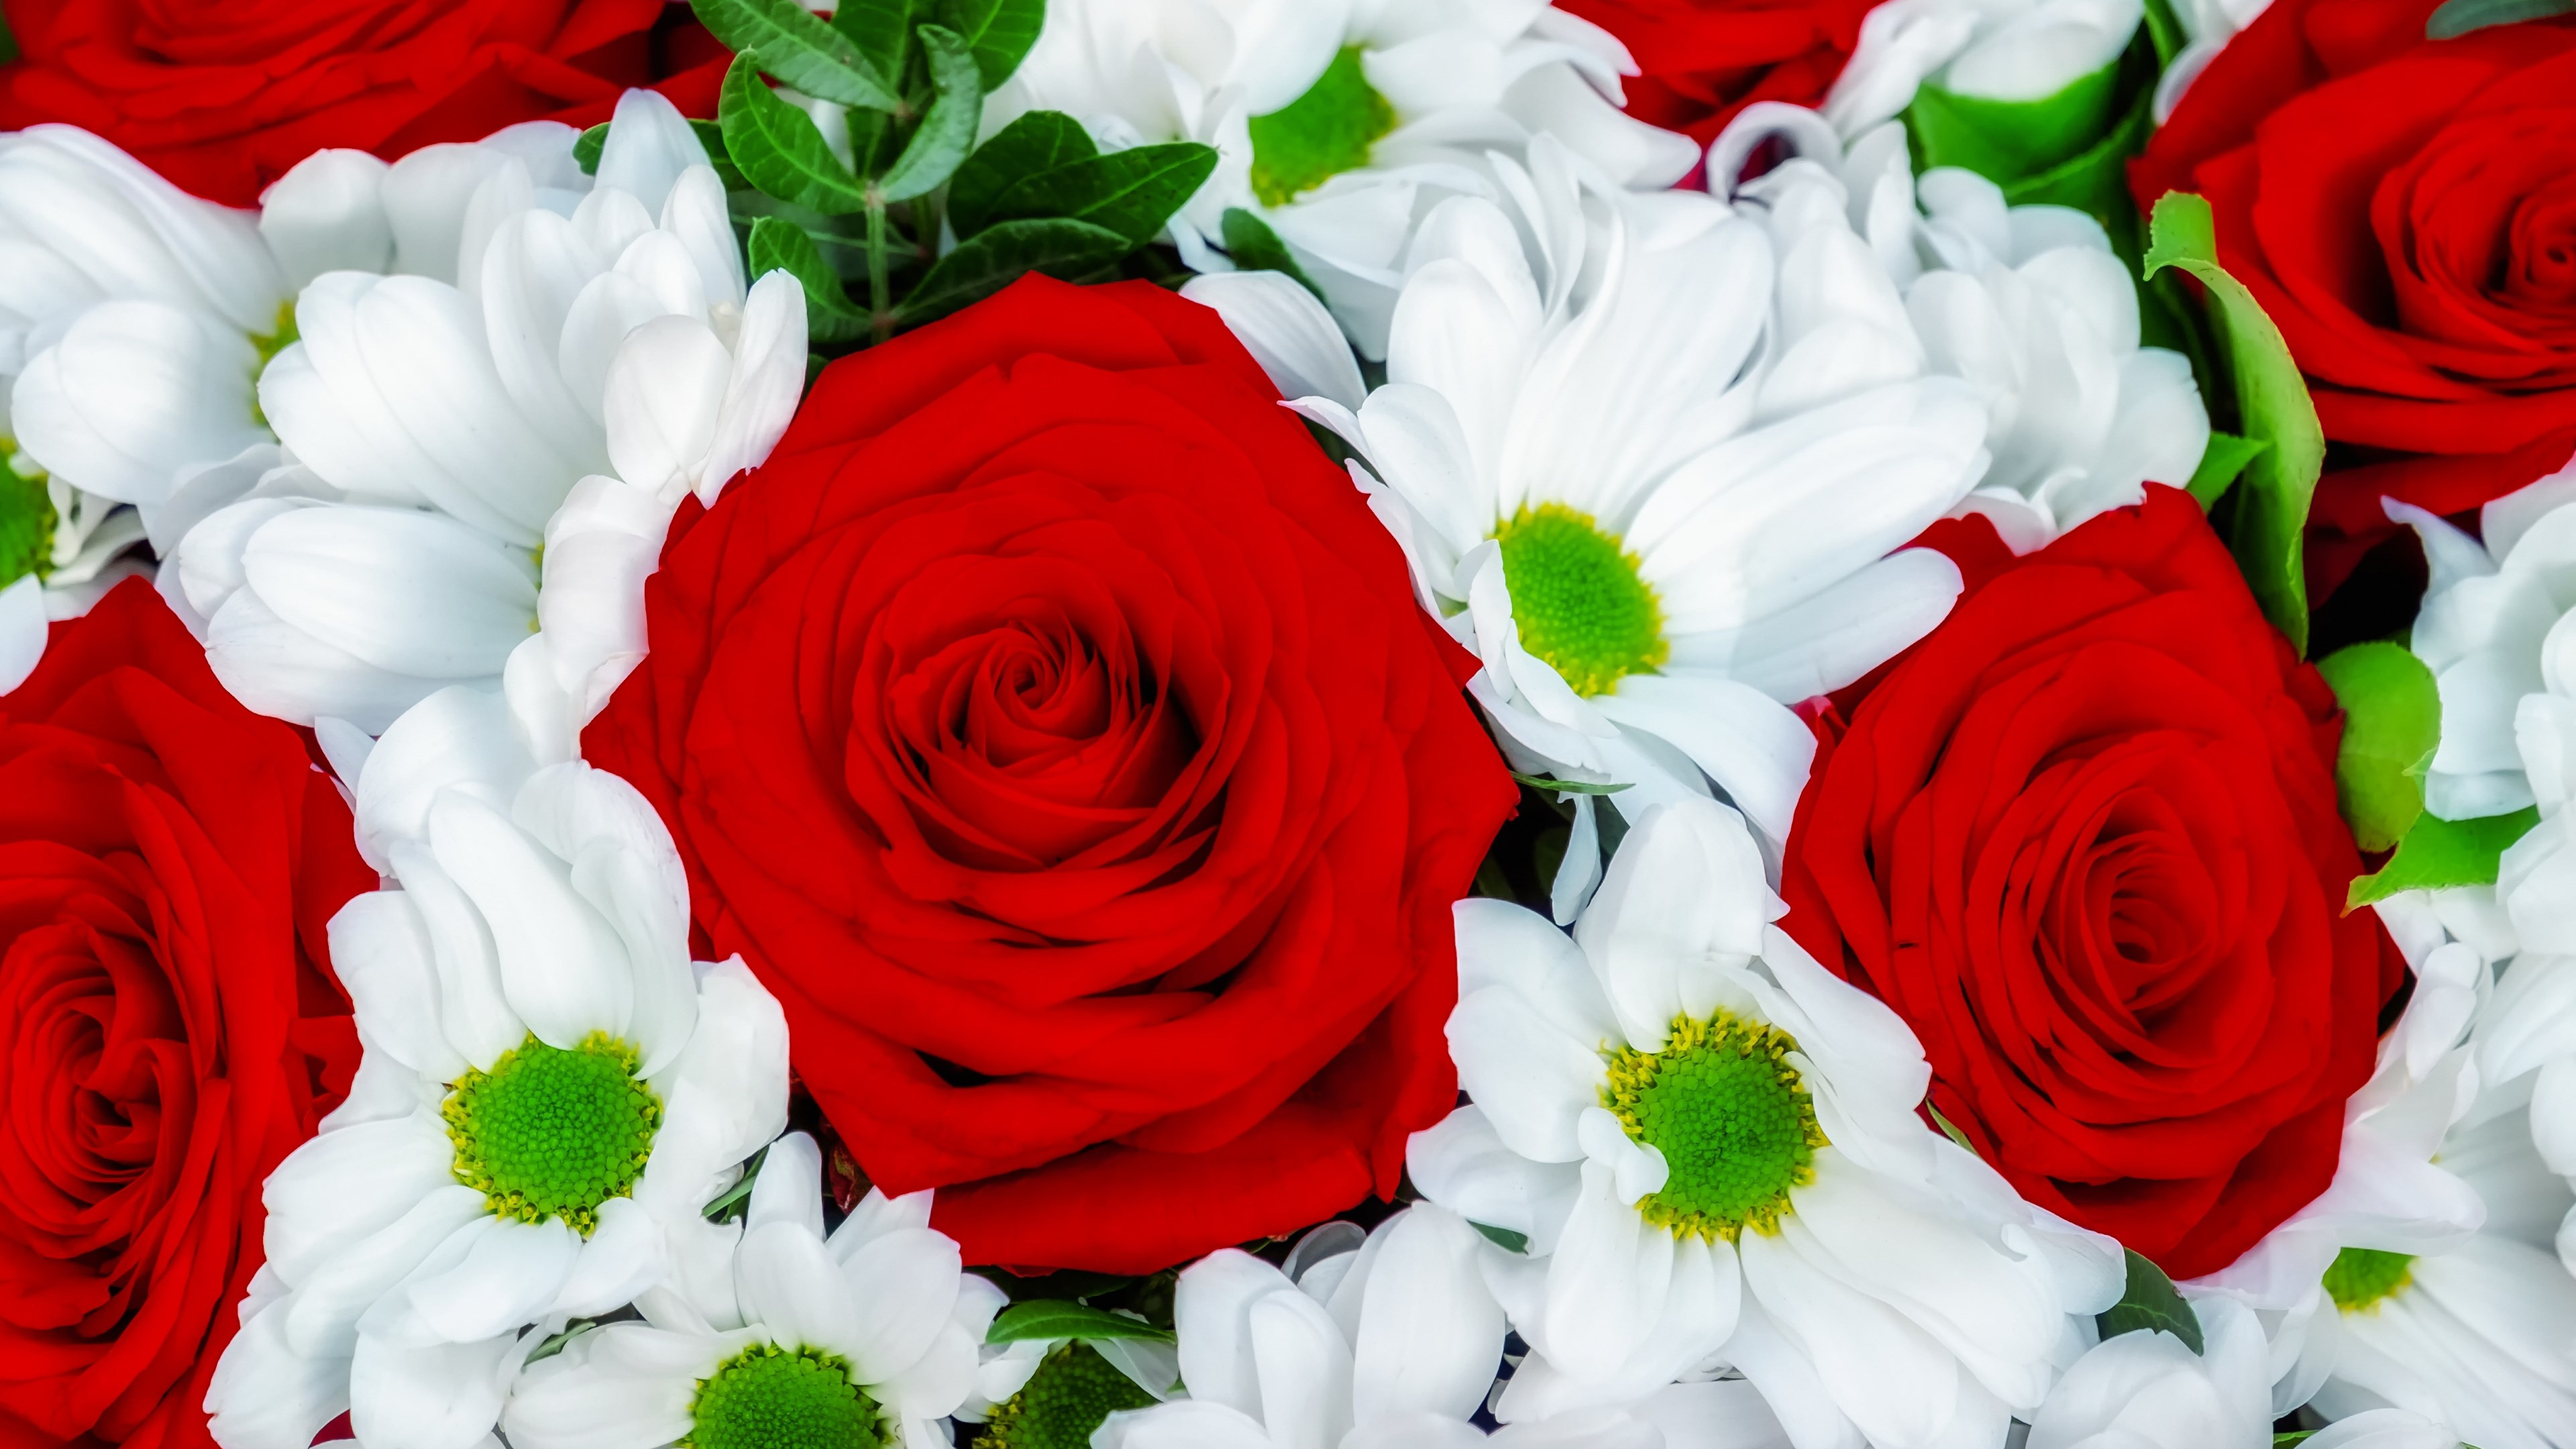 Roses and daisies bouquet wallpaper 3840x2160